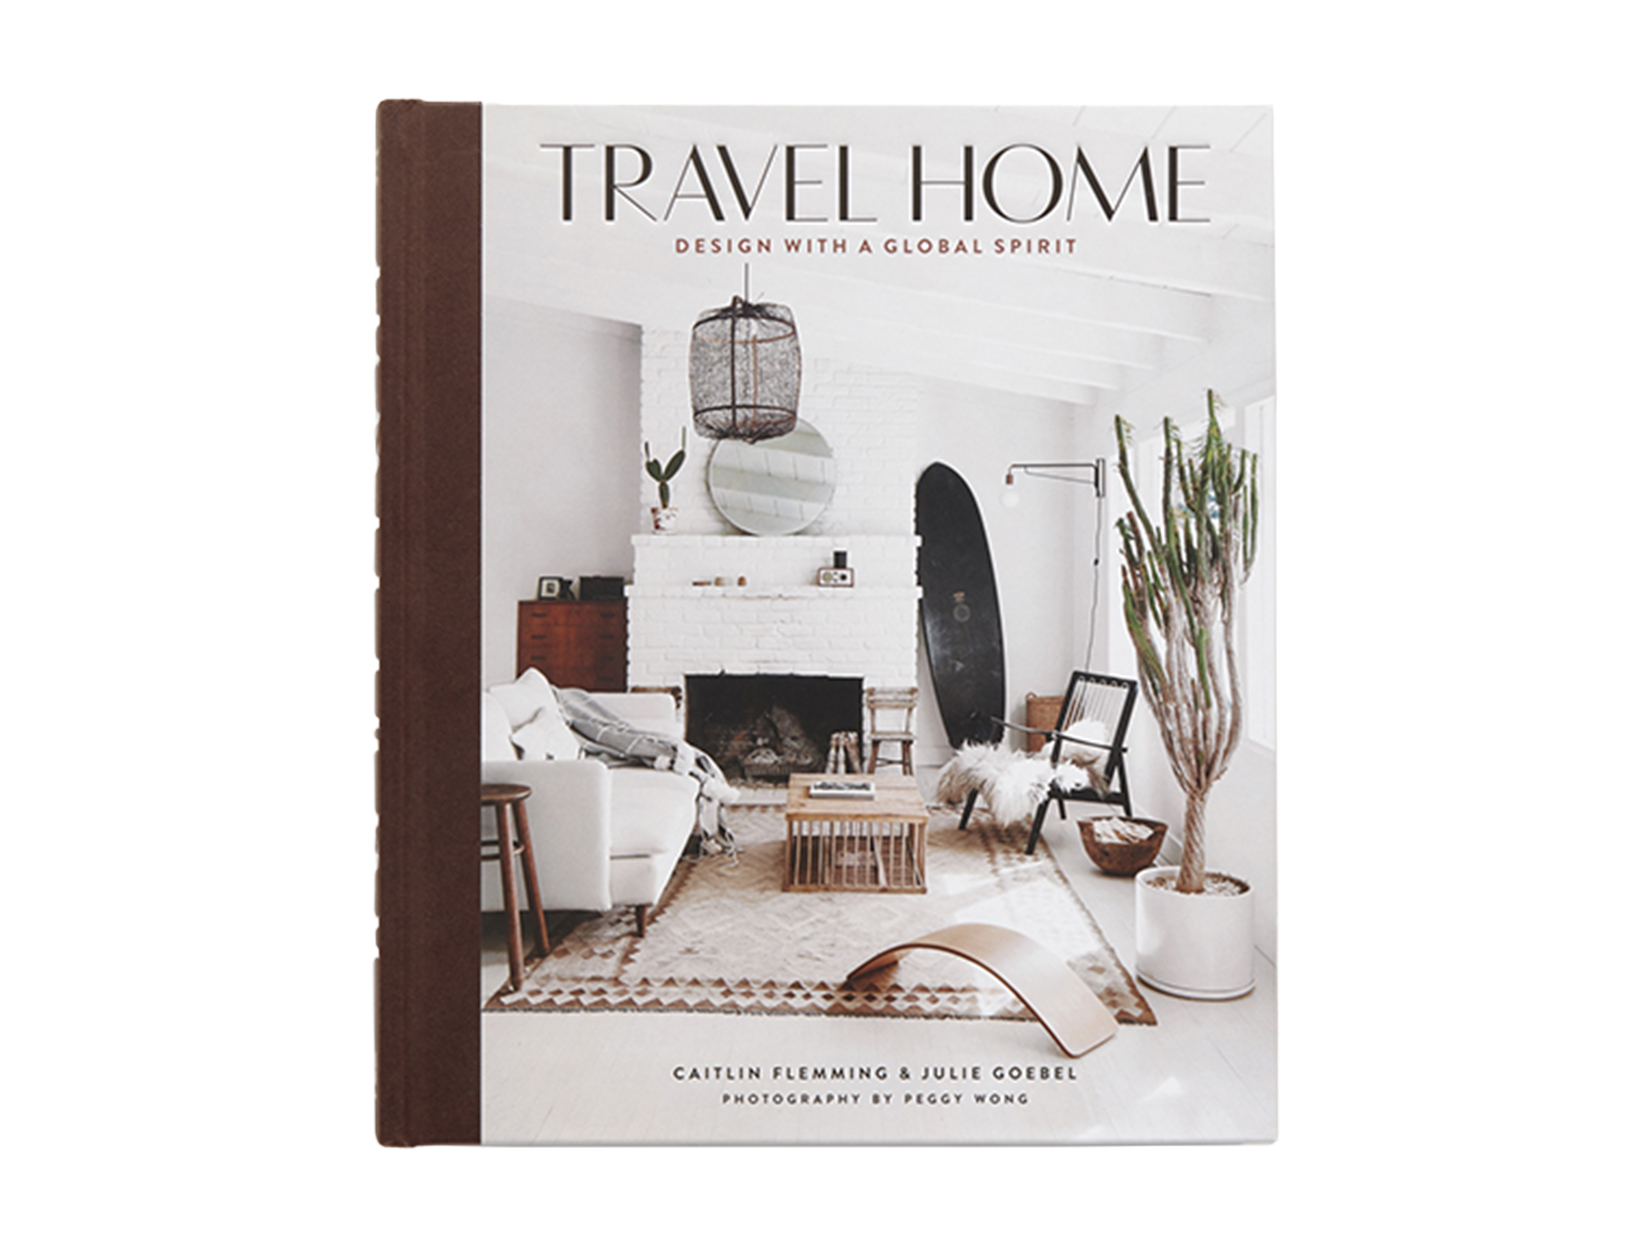 <em>Travel Home</em> by Caitlin Flemming and Julie Goebel